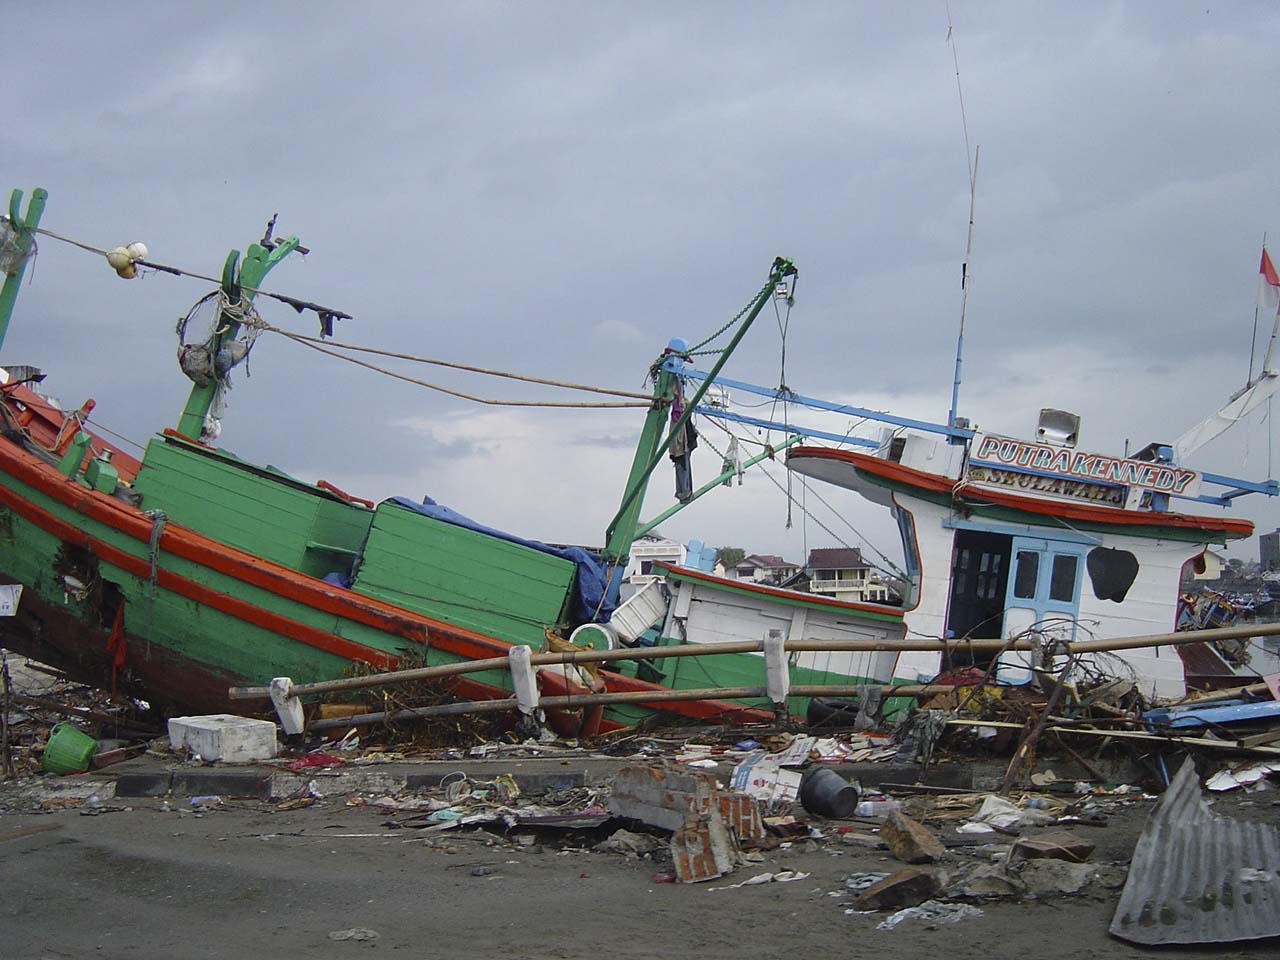 boats washed ashore